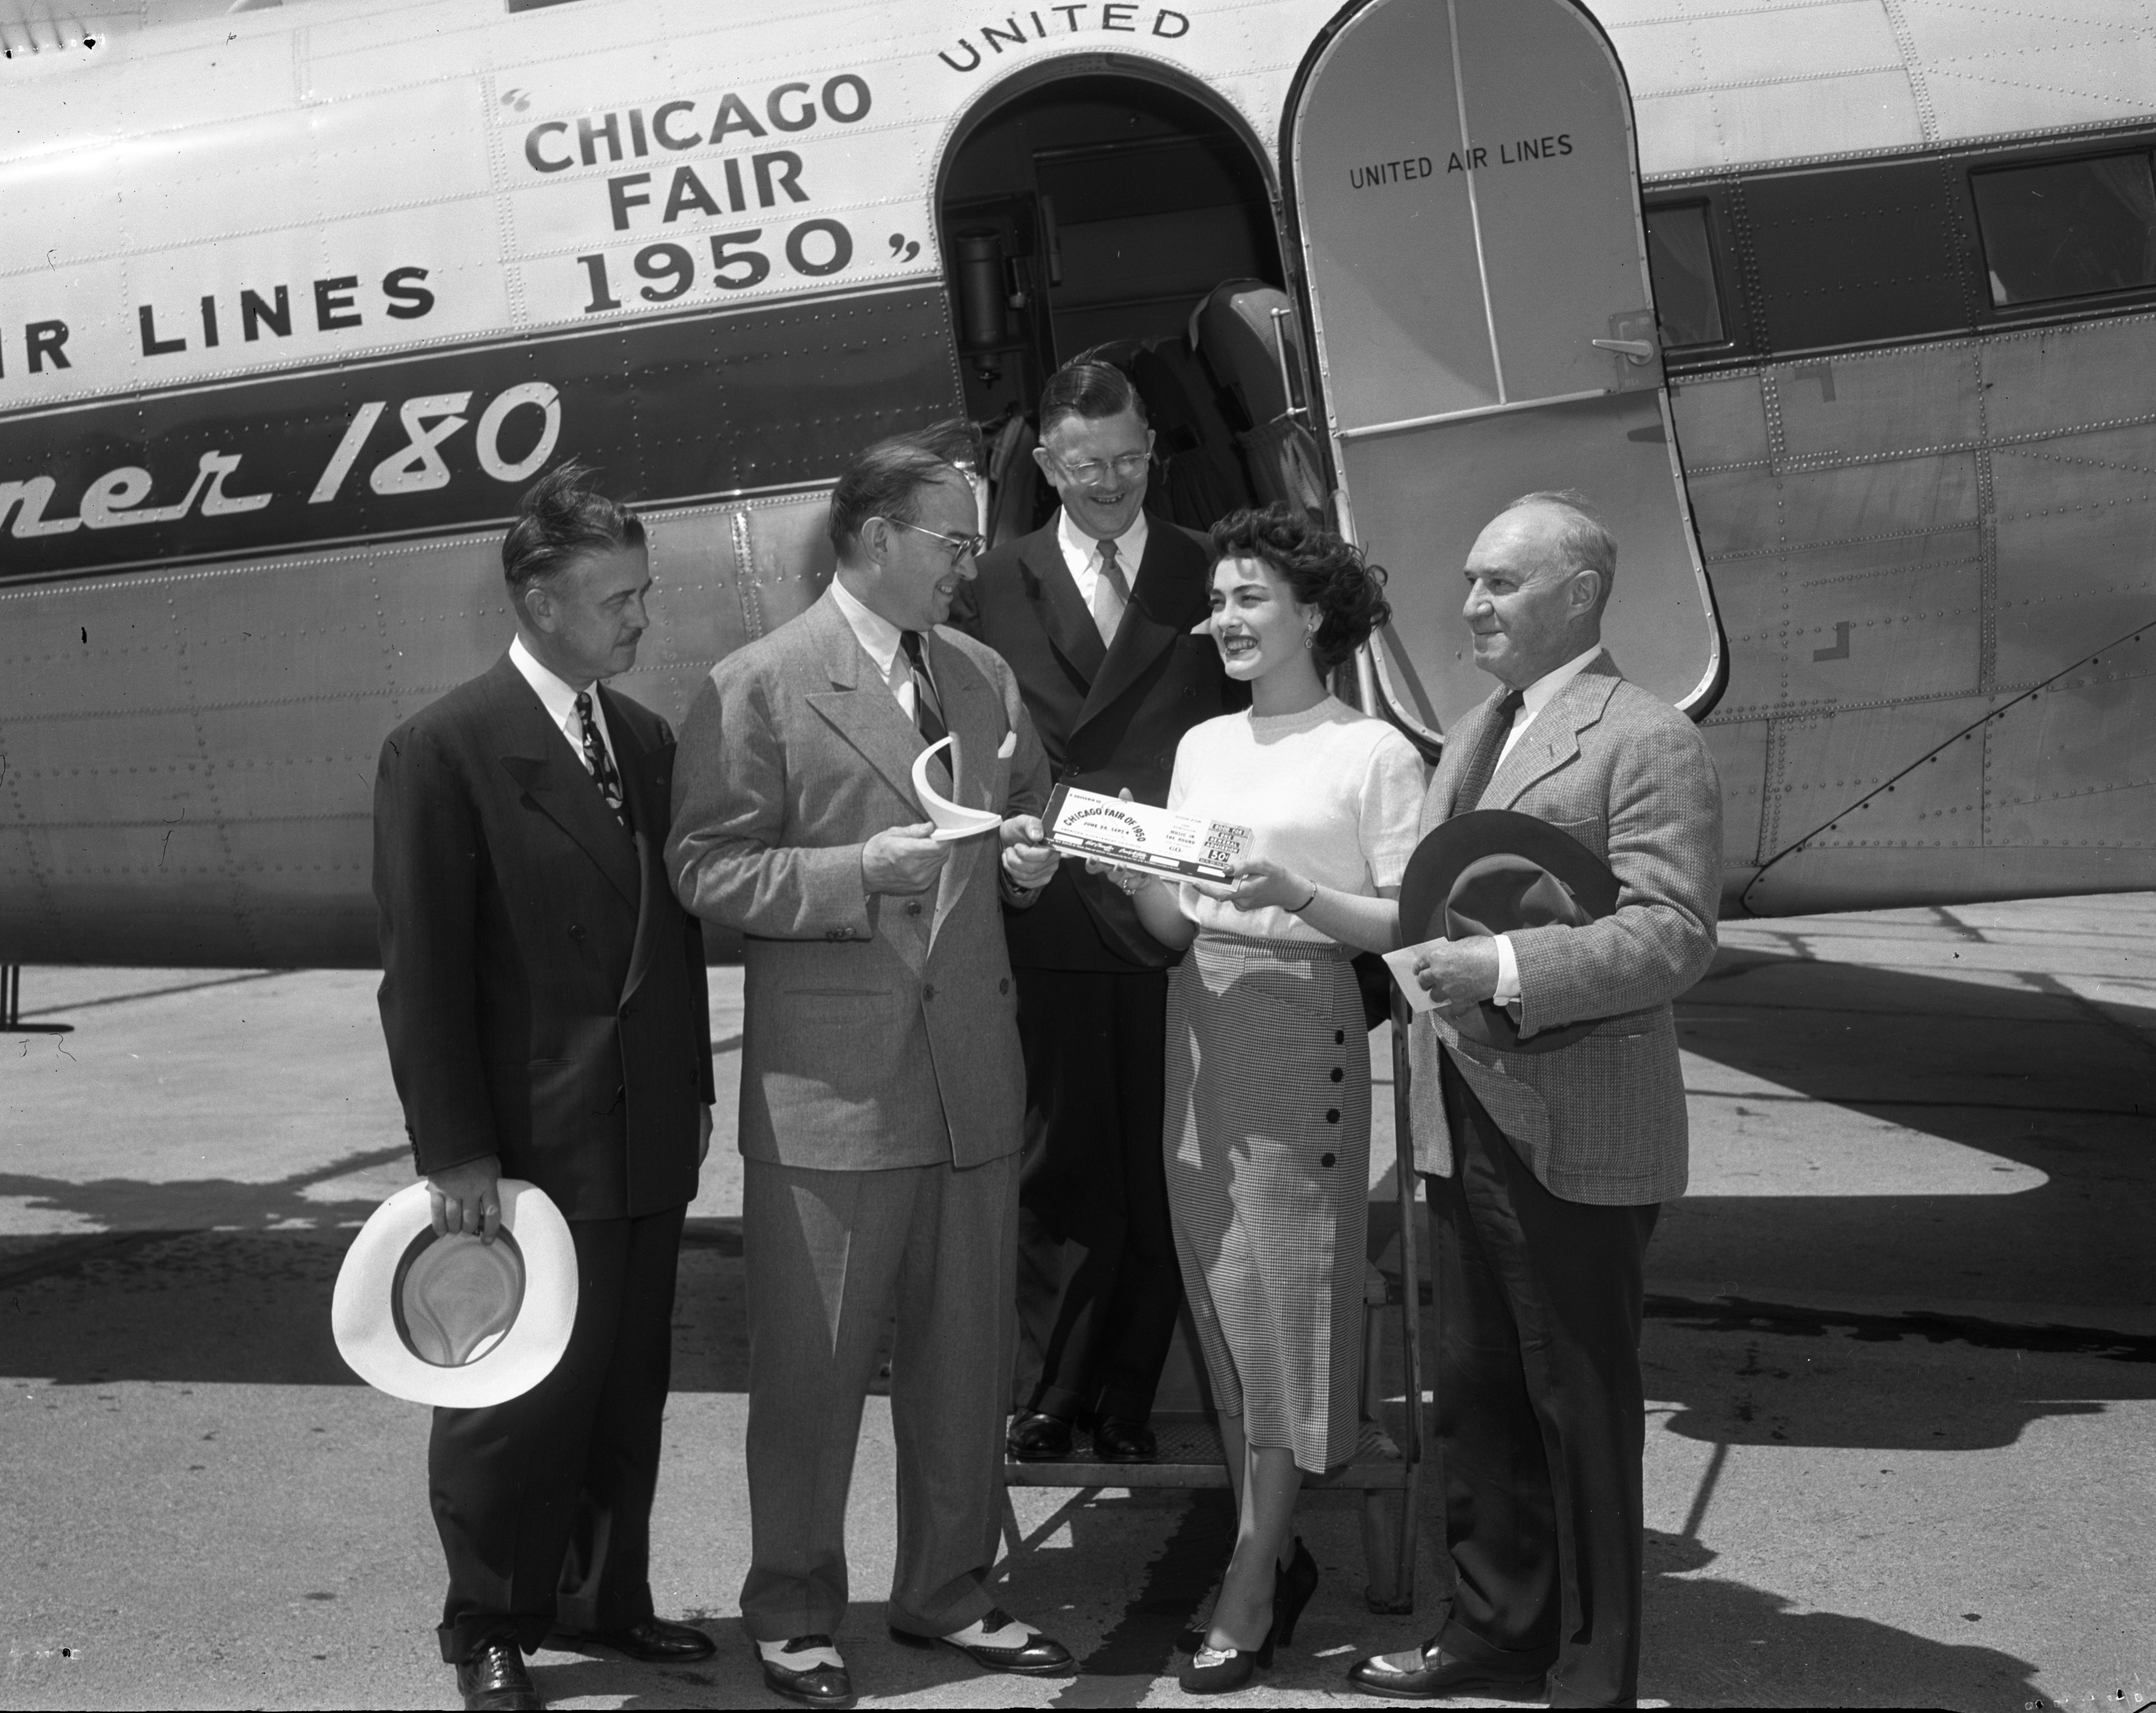 Mayor Brown Receives Tickets to Chicago World's Fair From Miss Chicago, June 1950 image